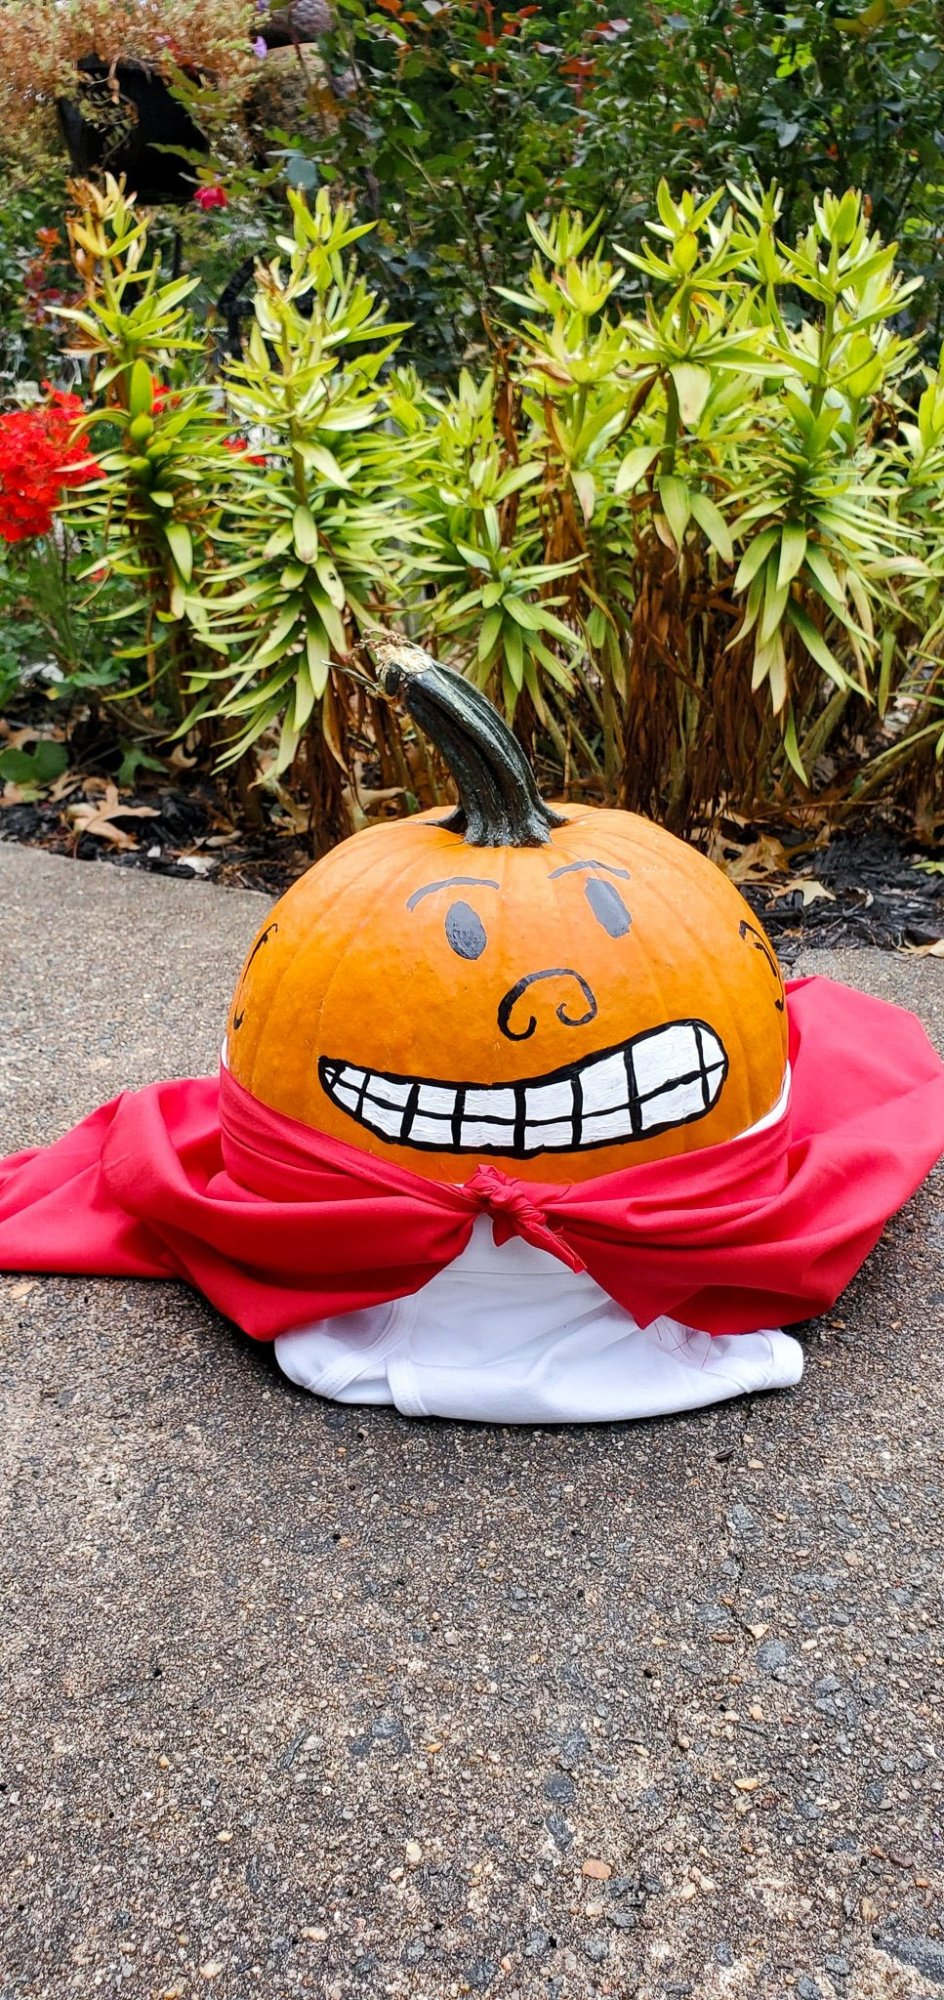 Painted Captain Underpants Pumpkin Finished. Skip the mess and create your very own Painted Captain Underpants Pumpkin this Halloween. In celebration of Dreamworks's The Spooky Tales of Captain Underpants: Hack-A-Ween Halloween special streaming now on Netflix we created this fun painted halloween pumpkin.